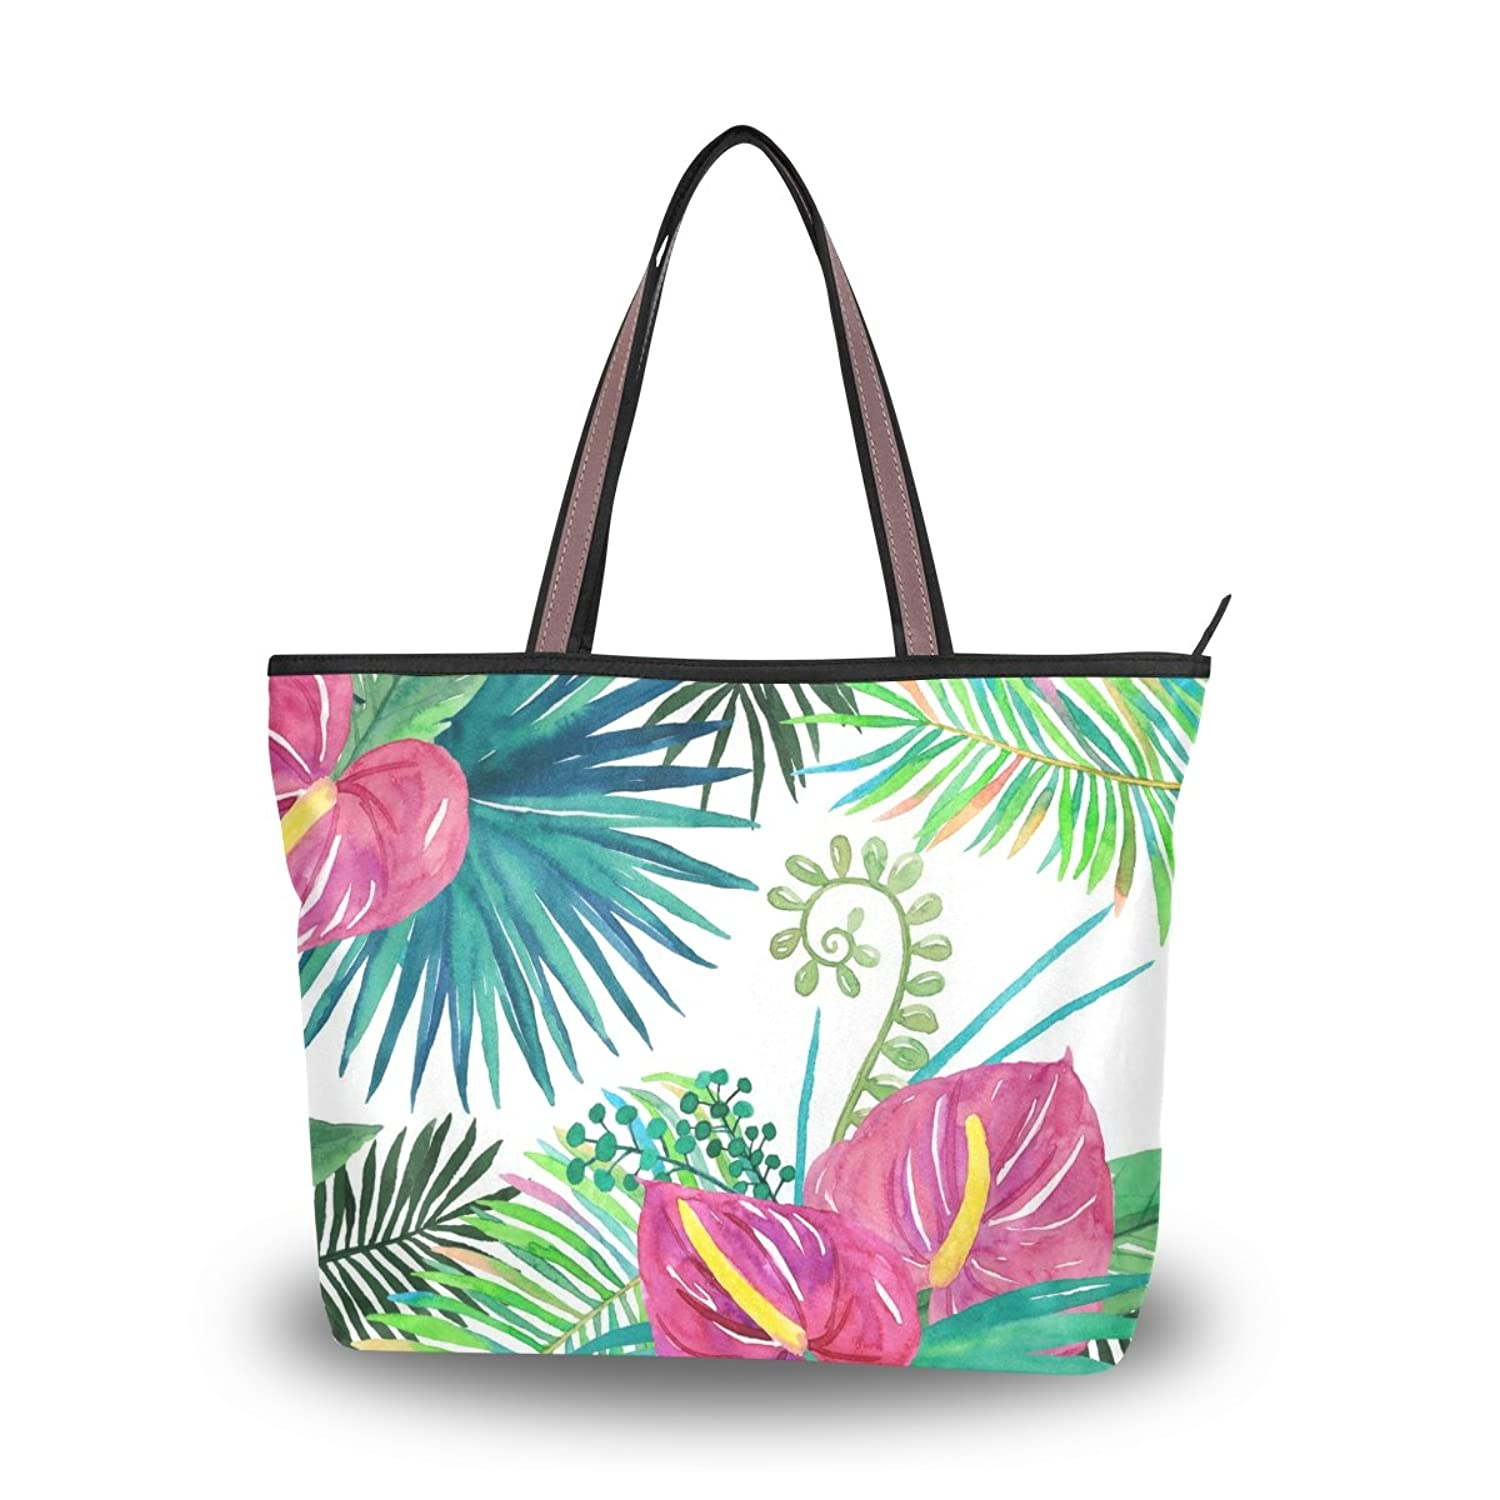 Senya Women's Handbag Microfiber Large Tote Shoulder Bag, Tropical Palm Leaves